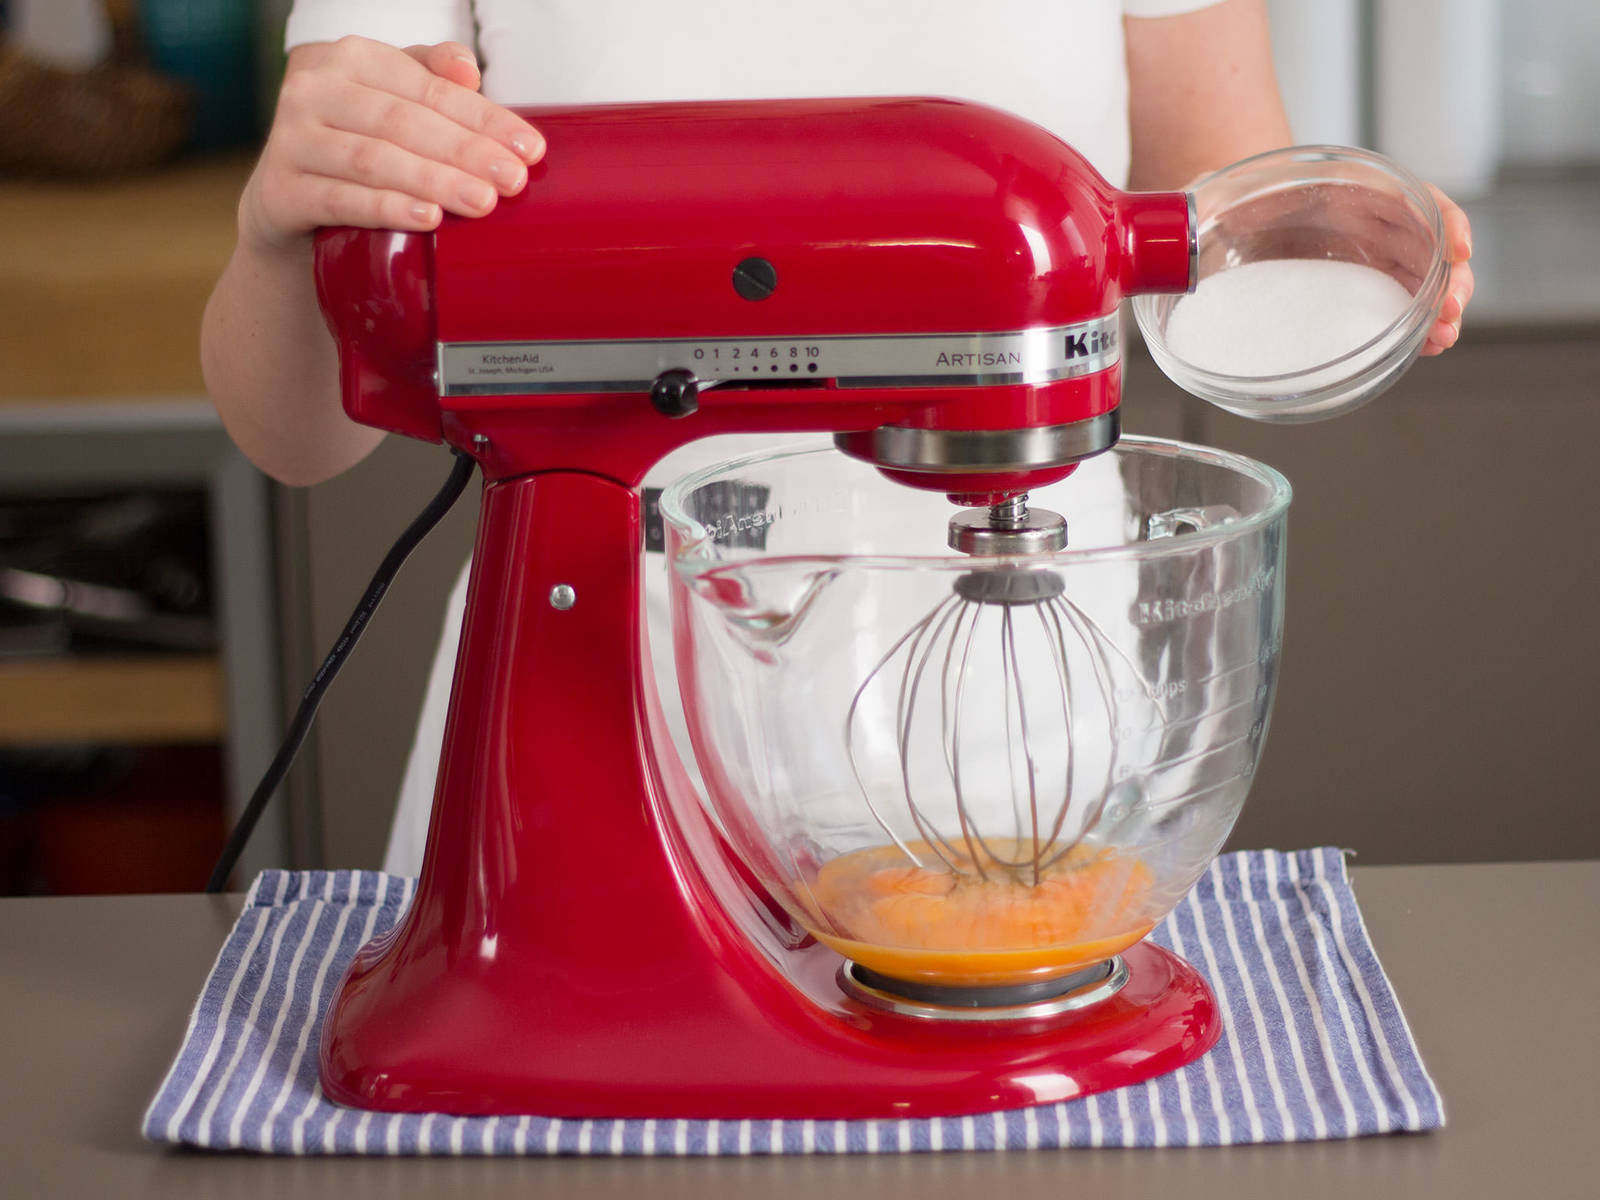 In a stand mixer, beat together egg yolks, eggs, and sugar until stiff peaks form.